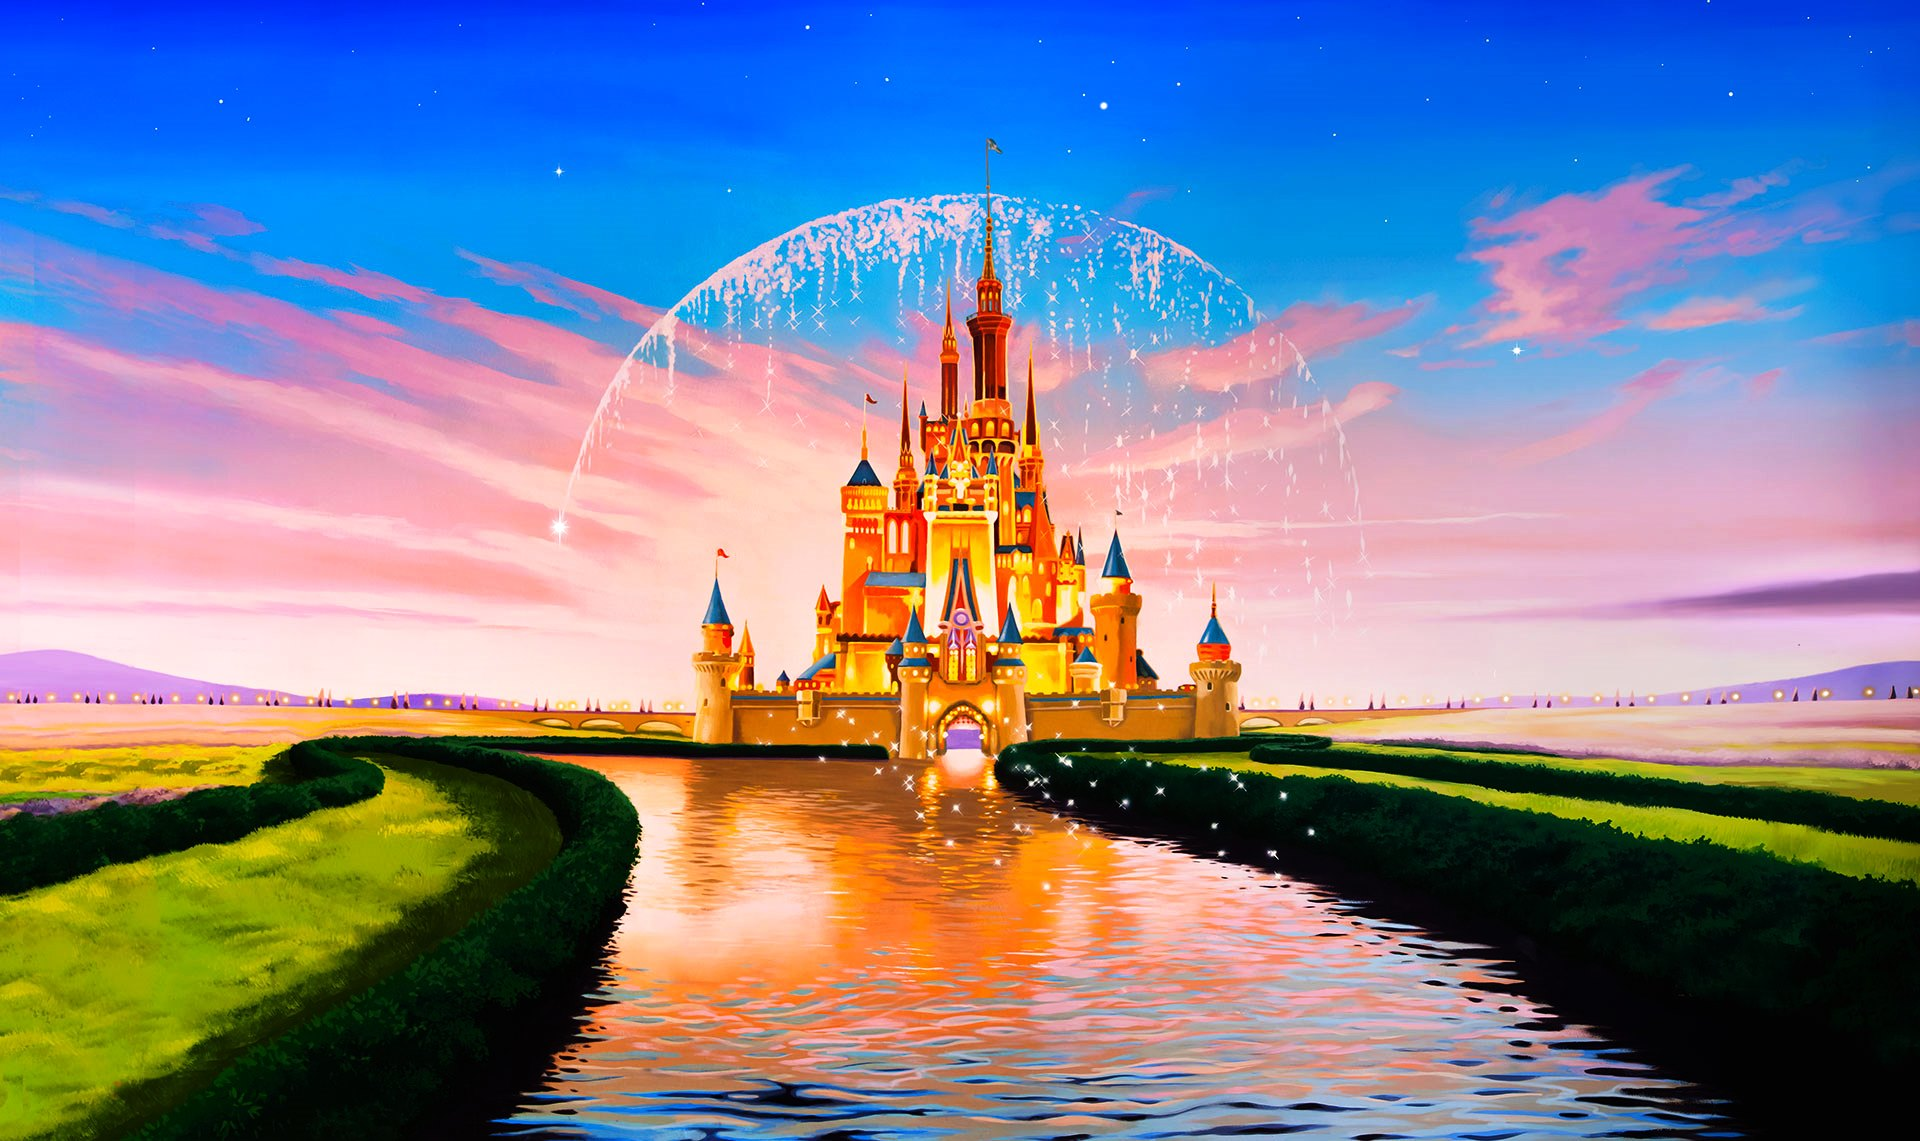 disney castle wallpapers free